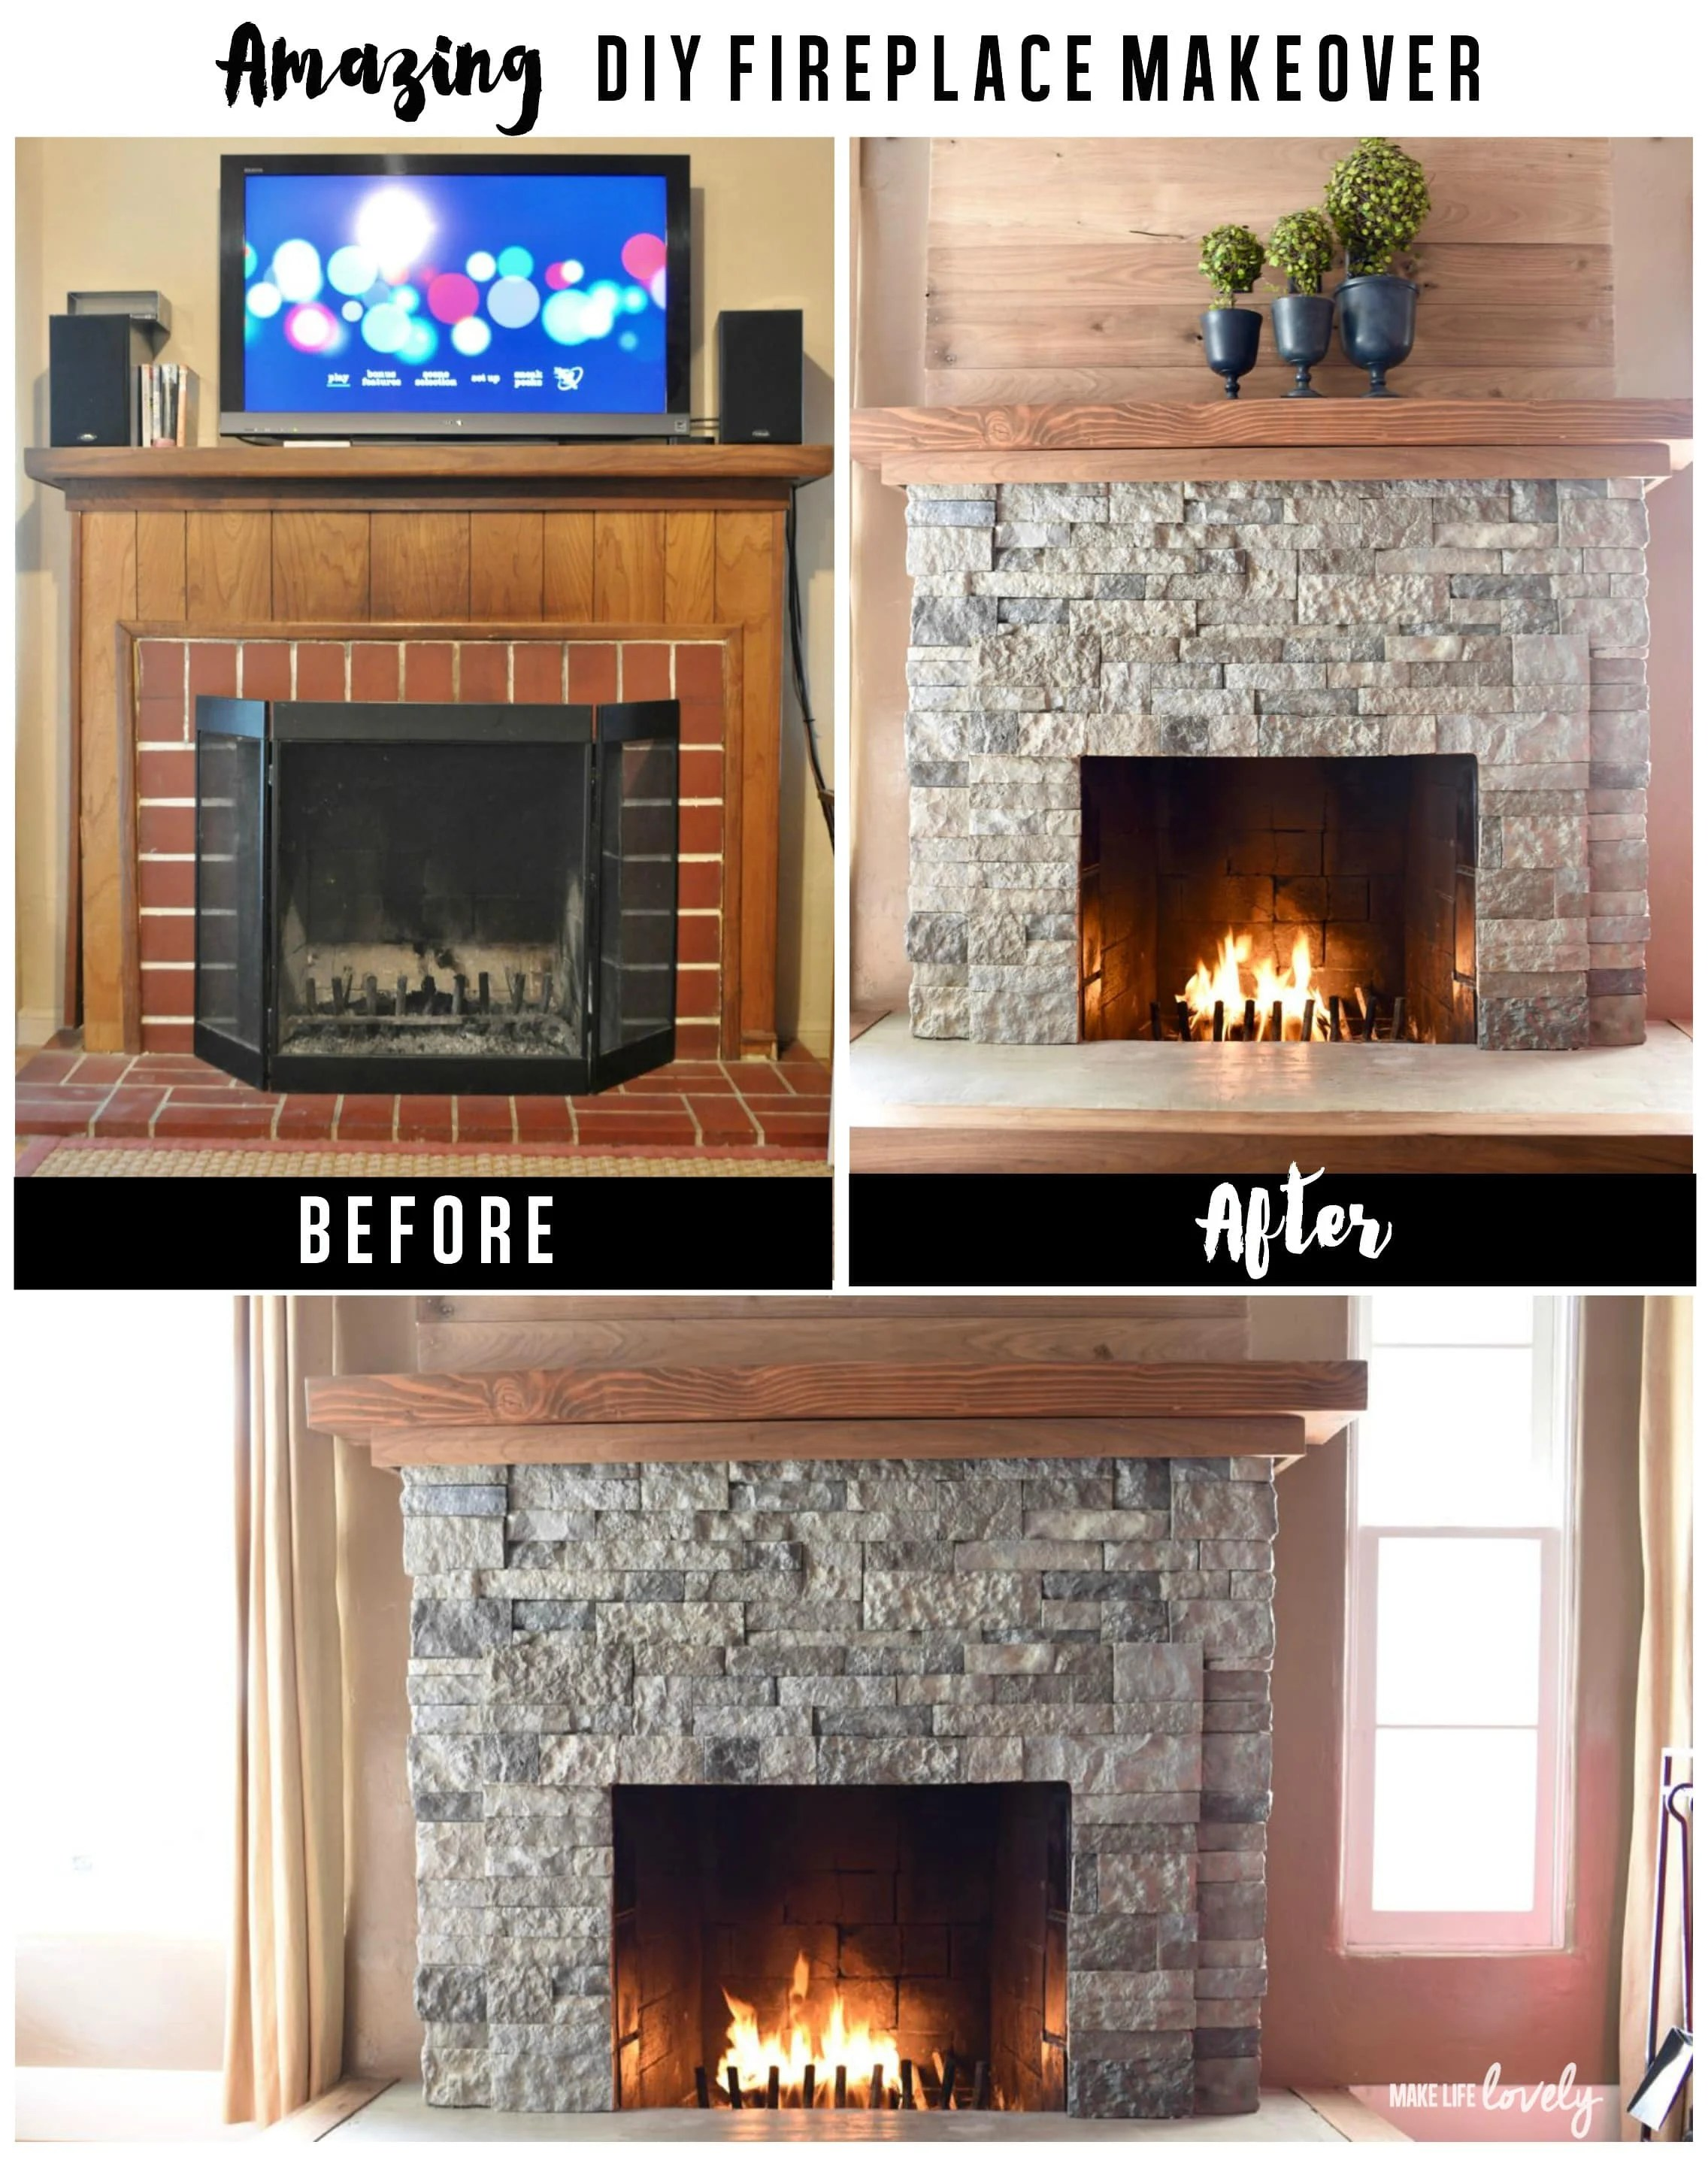 Make Over Airstone Fireplace Makeover From Ugly To Incredible